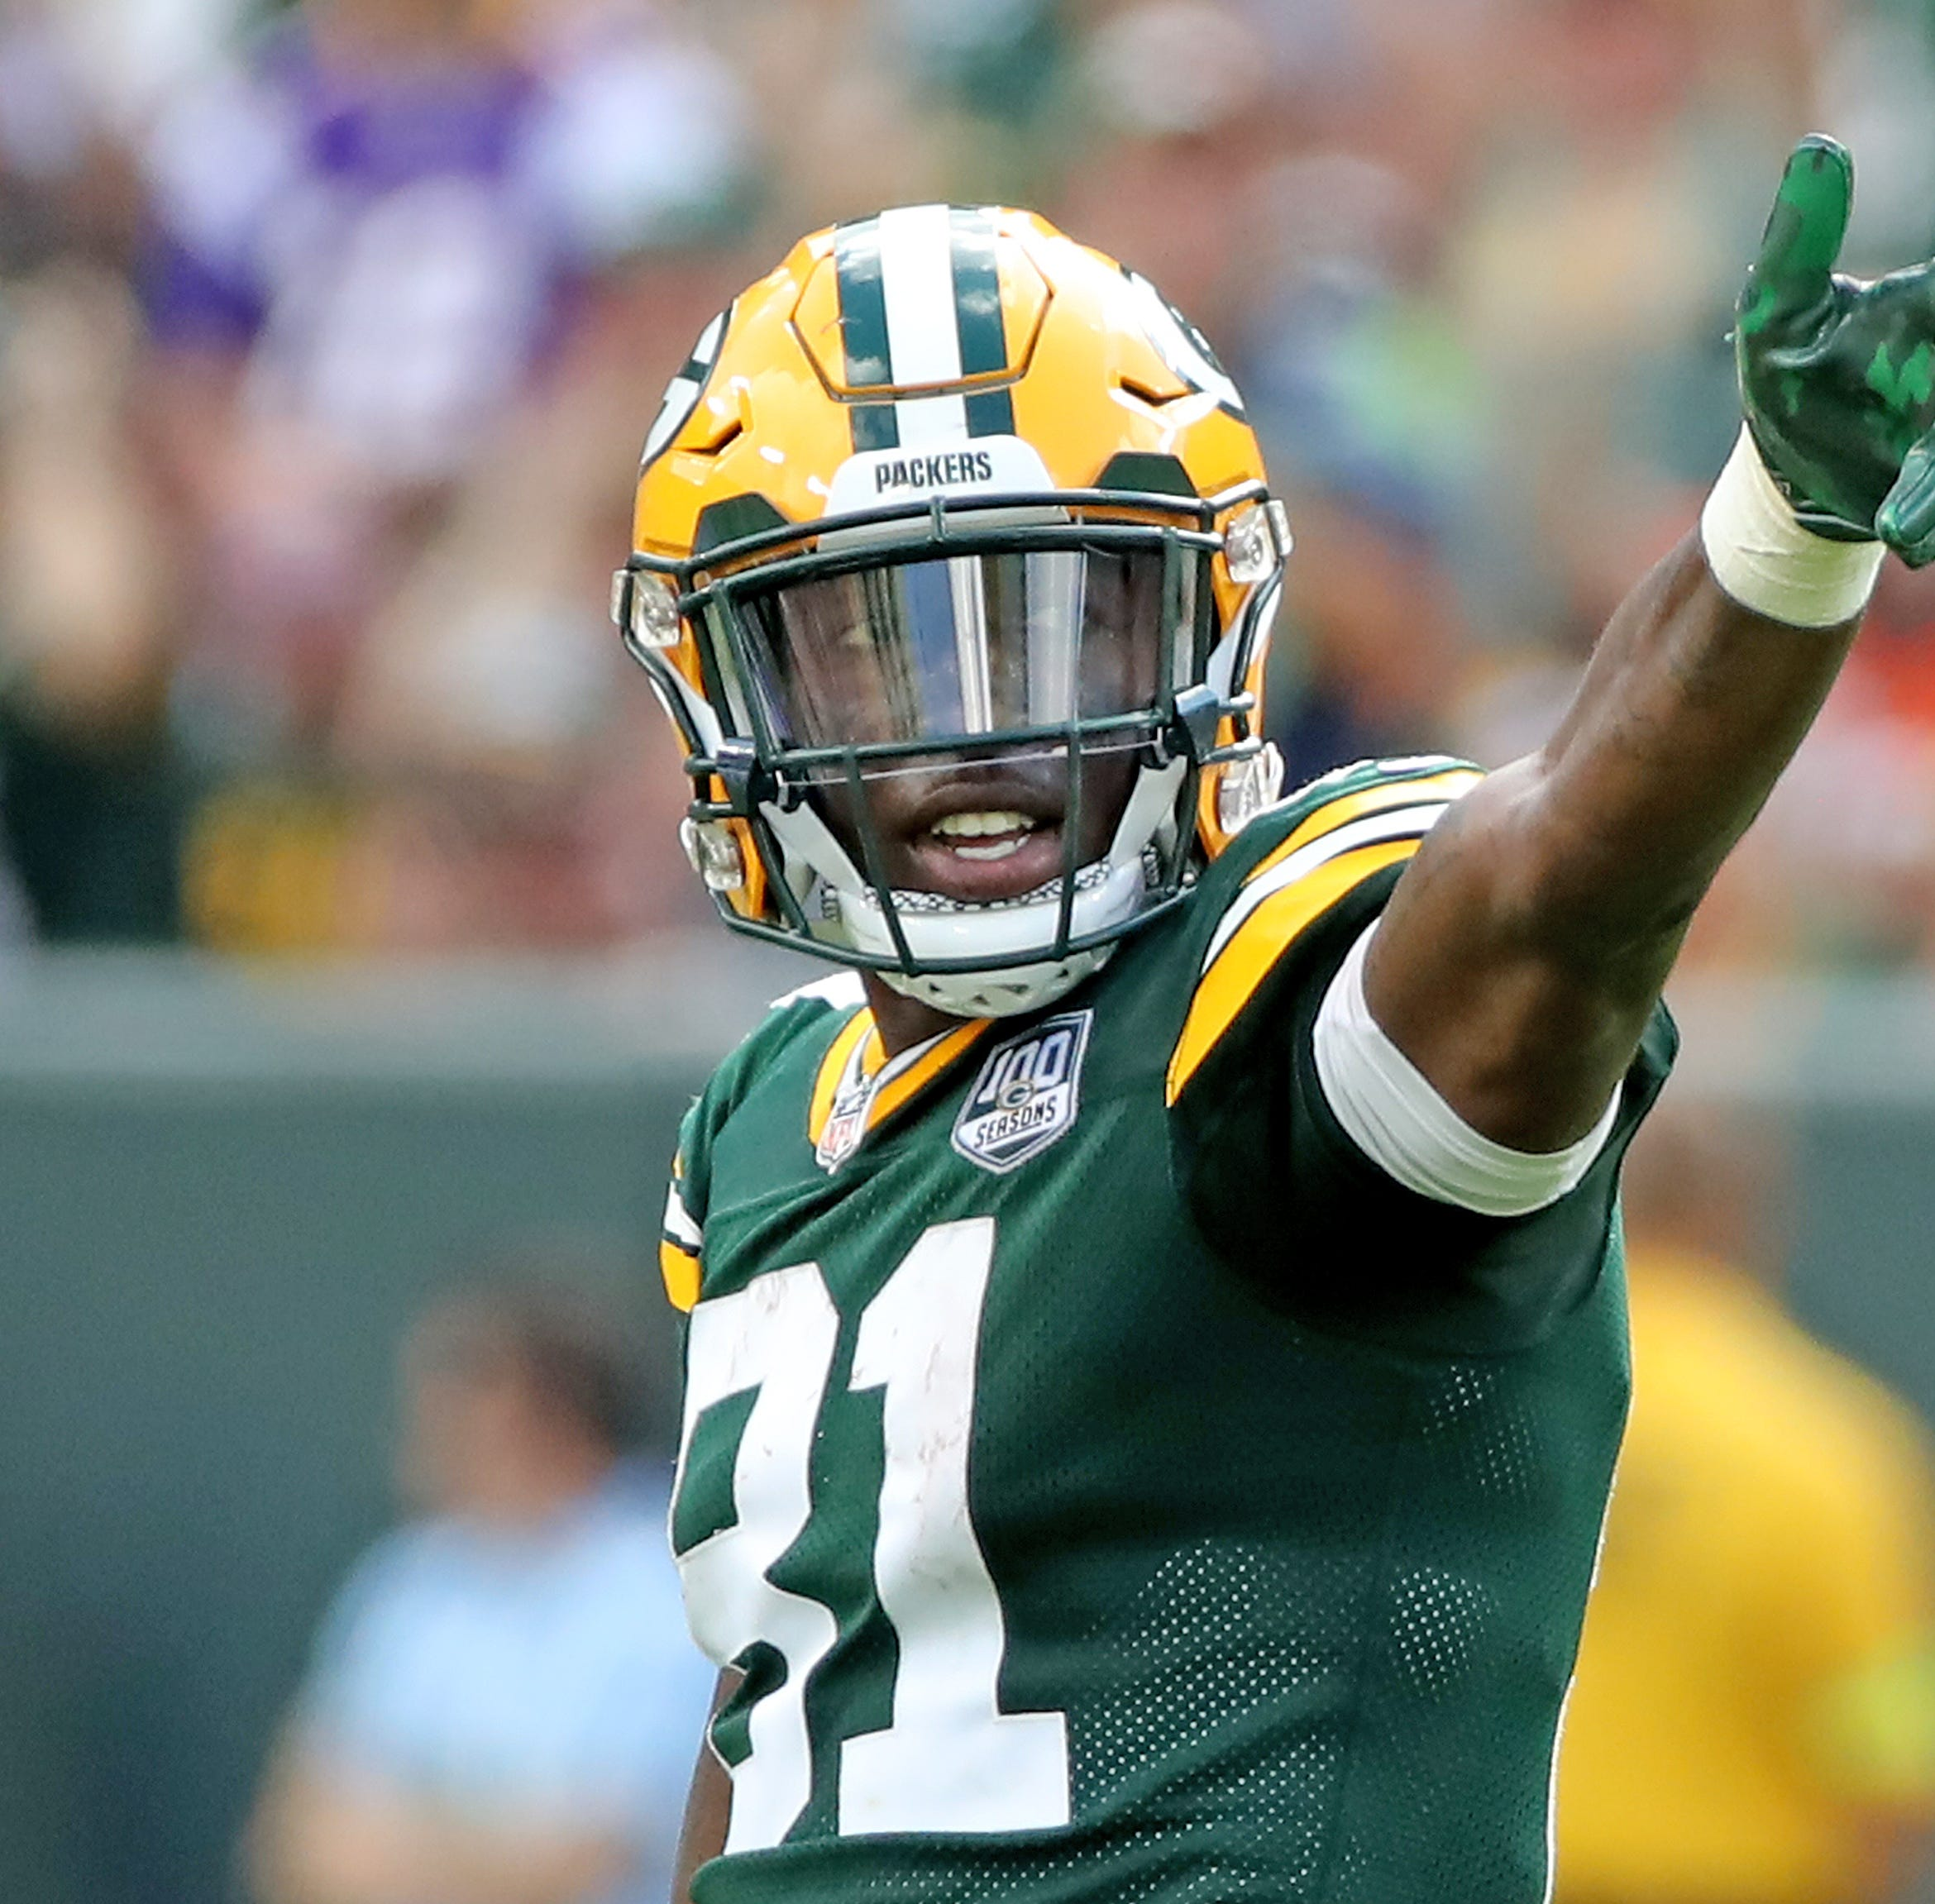 Packers receiver Geronimo Allison gets life advice from comedian Steve Harvey on talk show